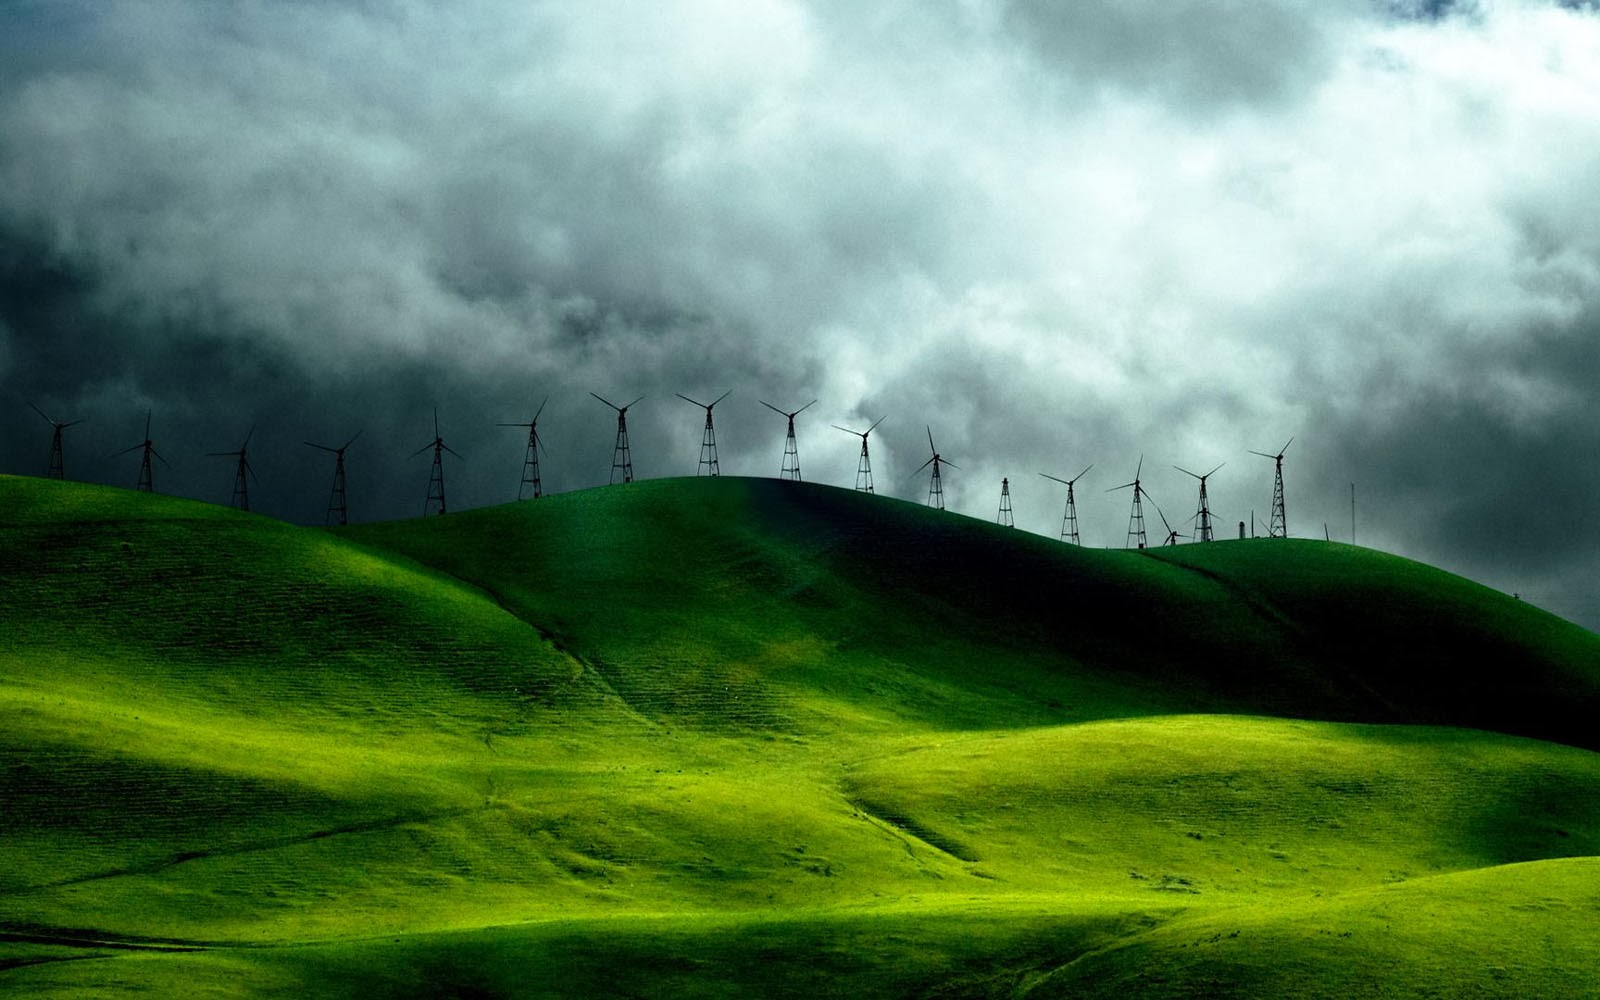 grassy hills wallpapers - top wallpaper desktop